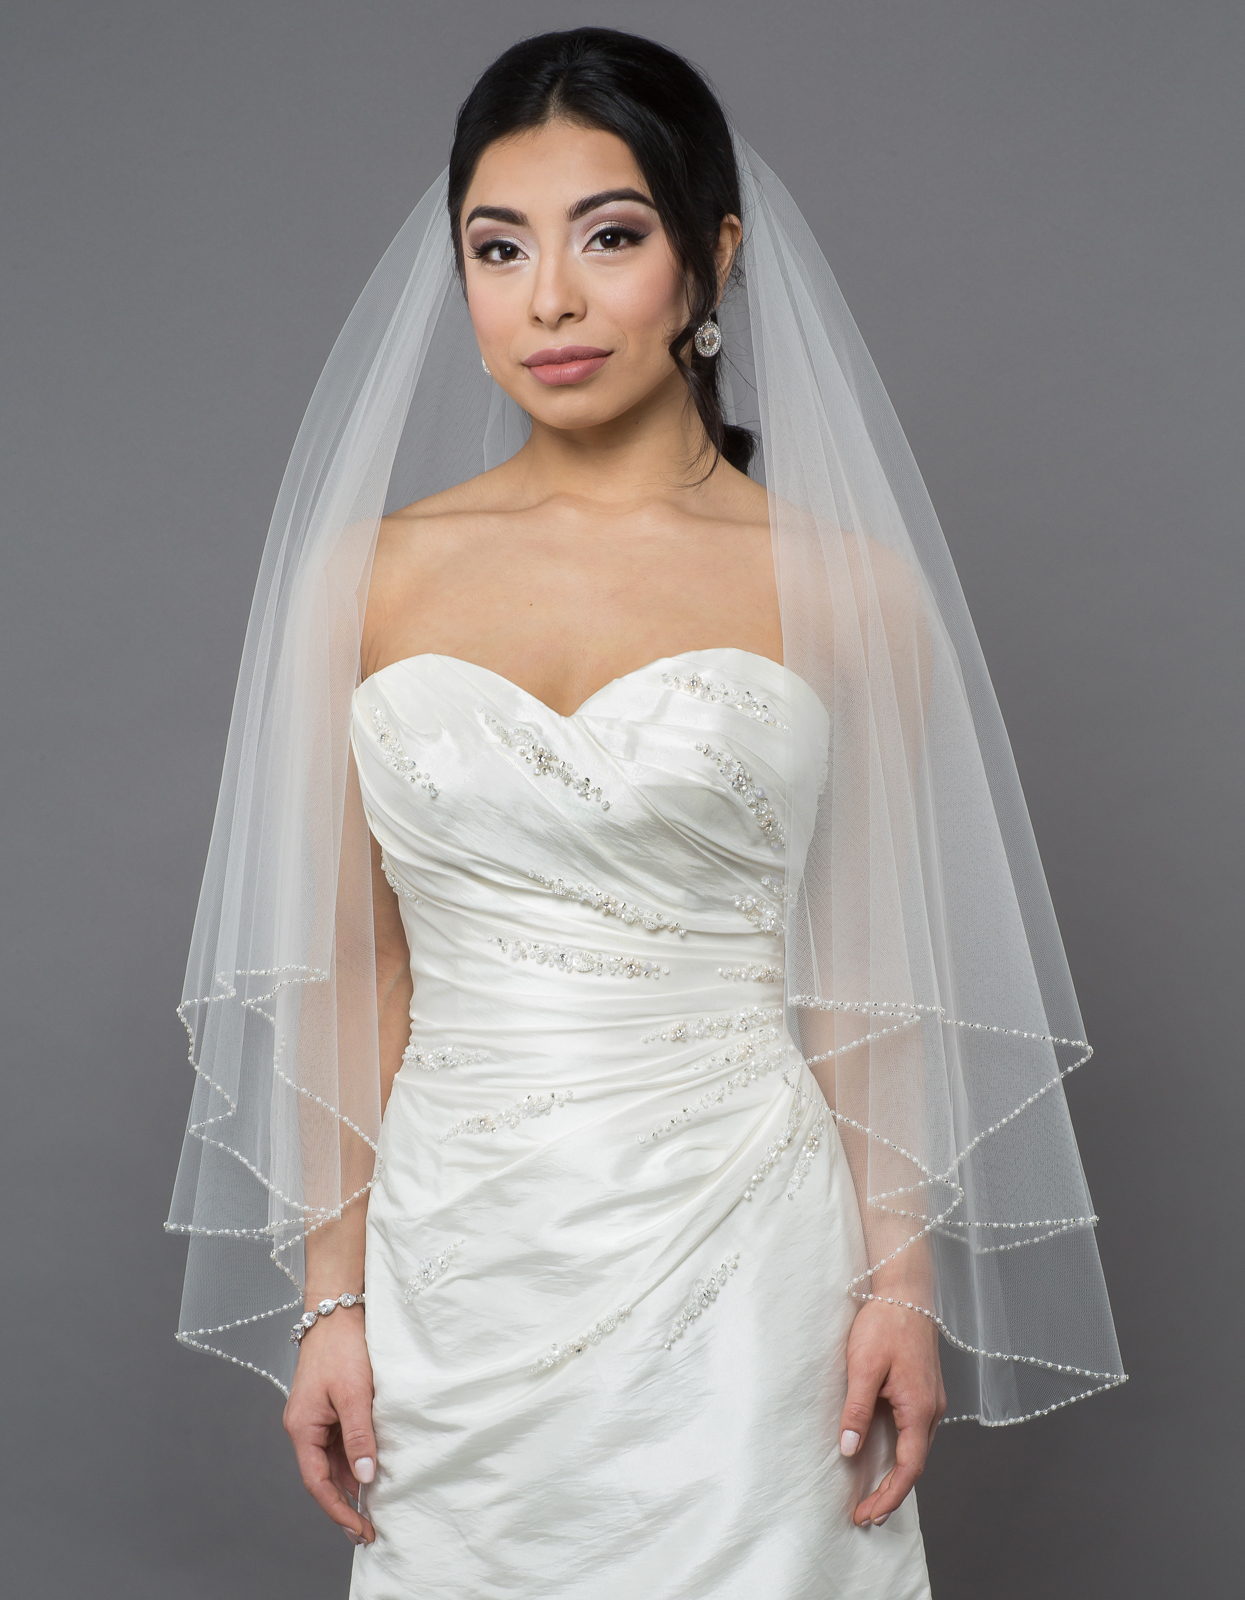 Bridal Classics Marquise Veil Collection MV-2386